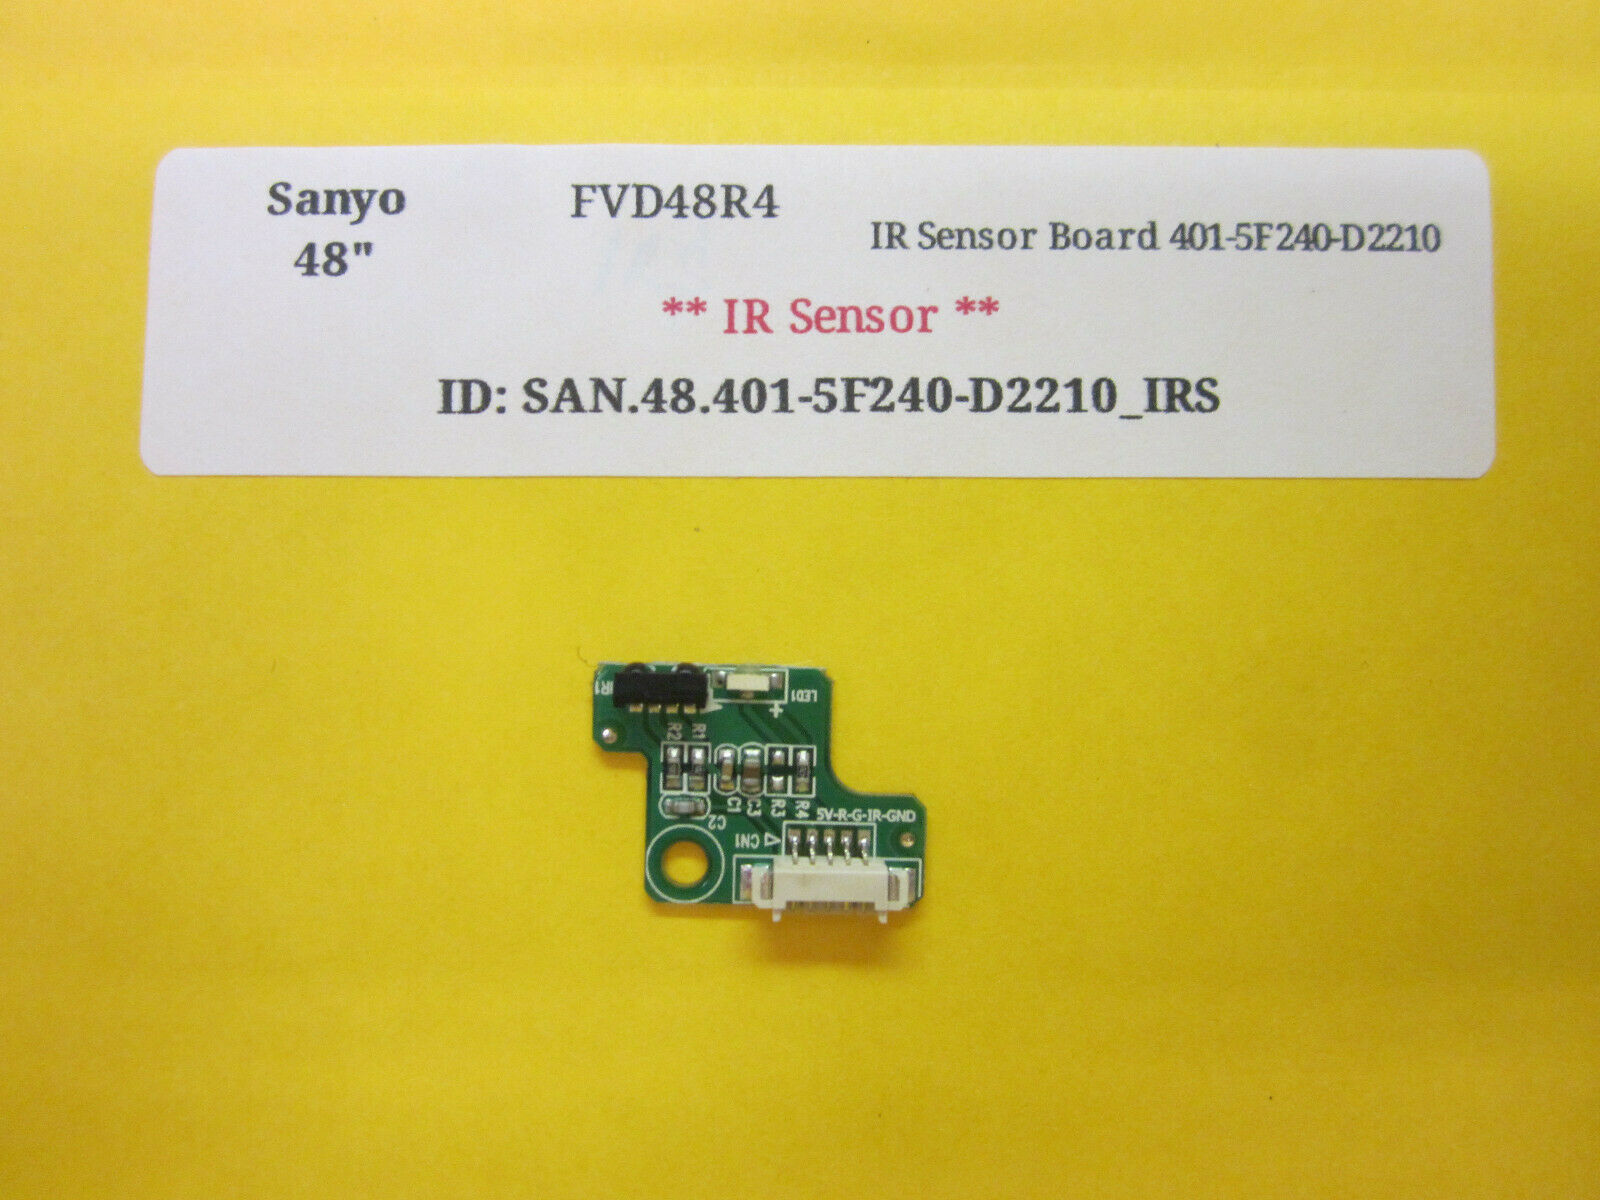 "Primary image for Sanyo 48"" FVD48R4 IR Sensor Board 401-5F240-D2210"